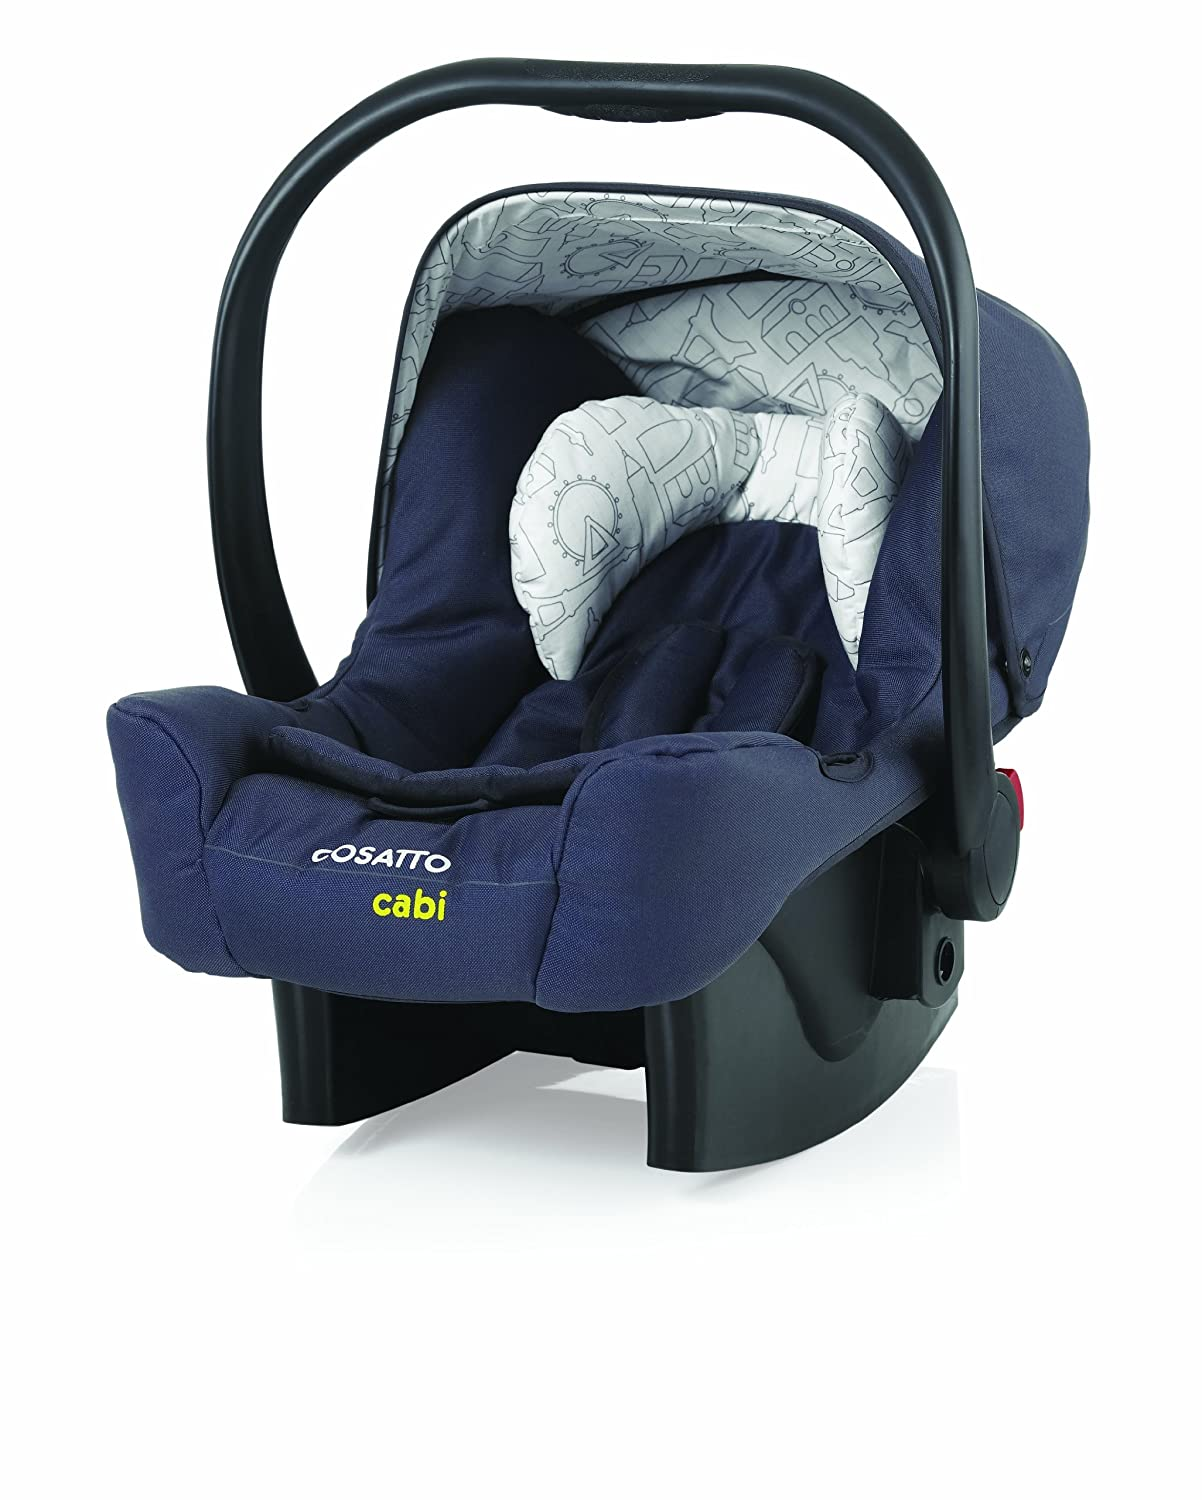 Cosatto Cabi Car Seat - Out On The Town: Amazon.co.uk: Baby